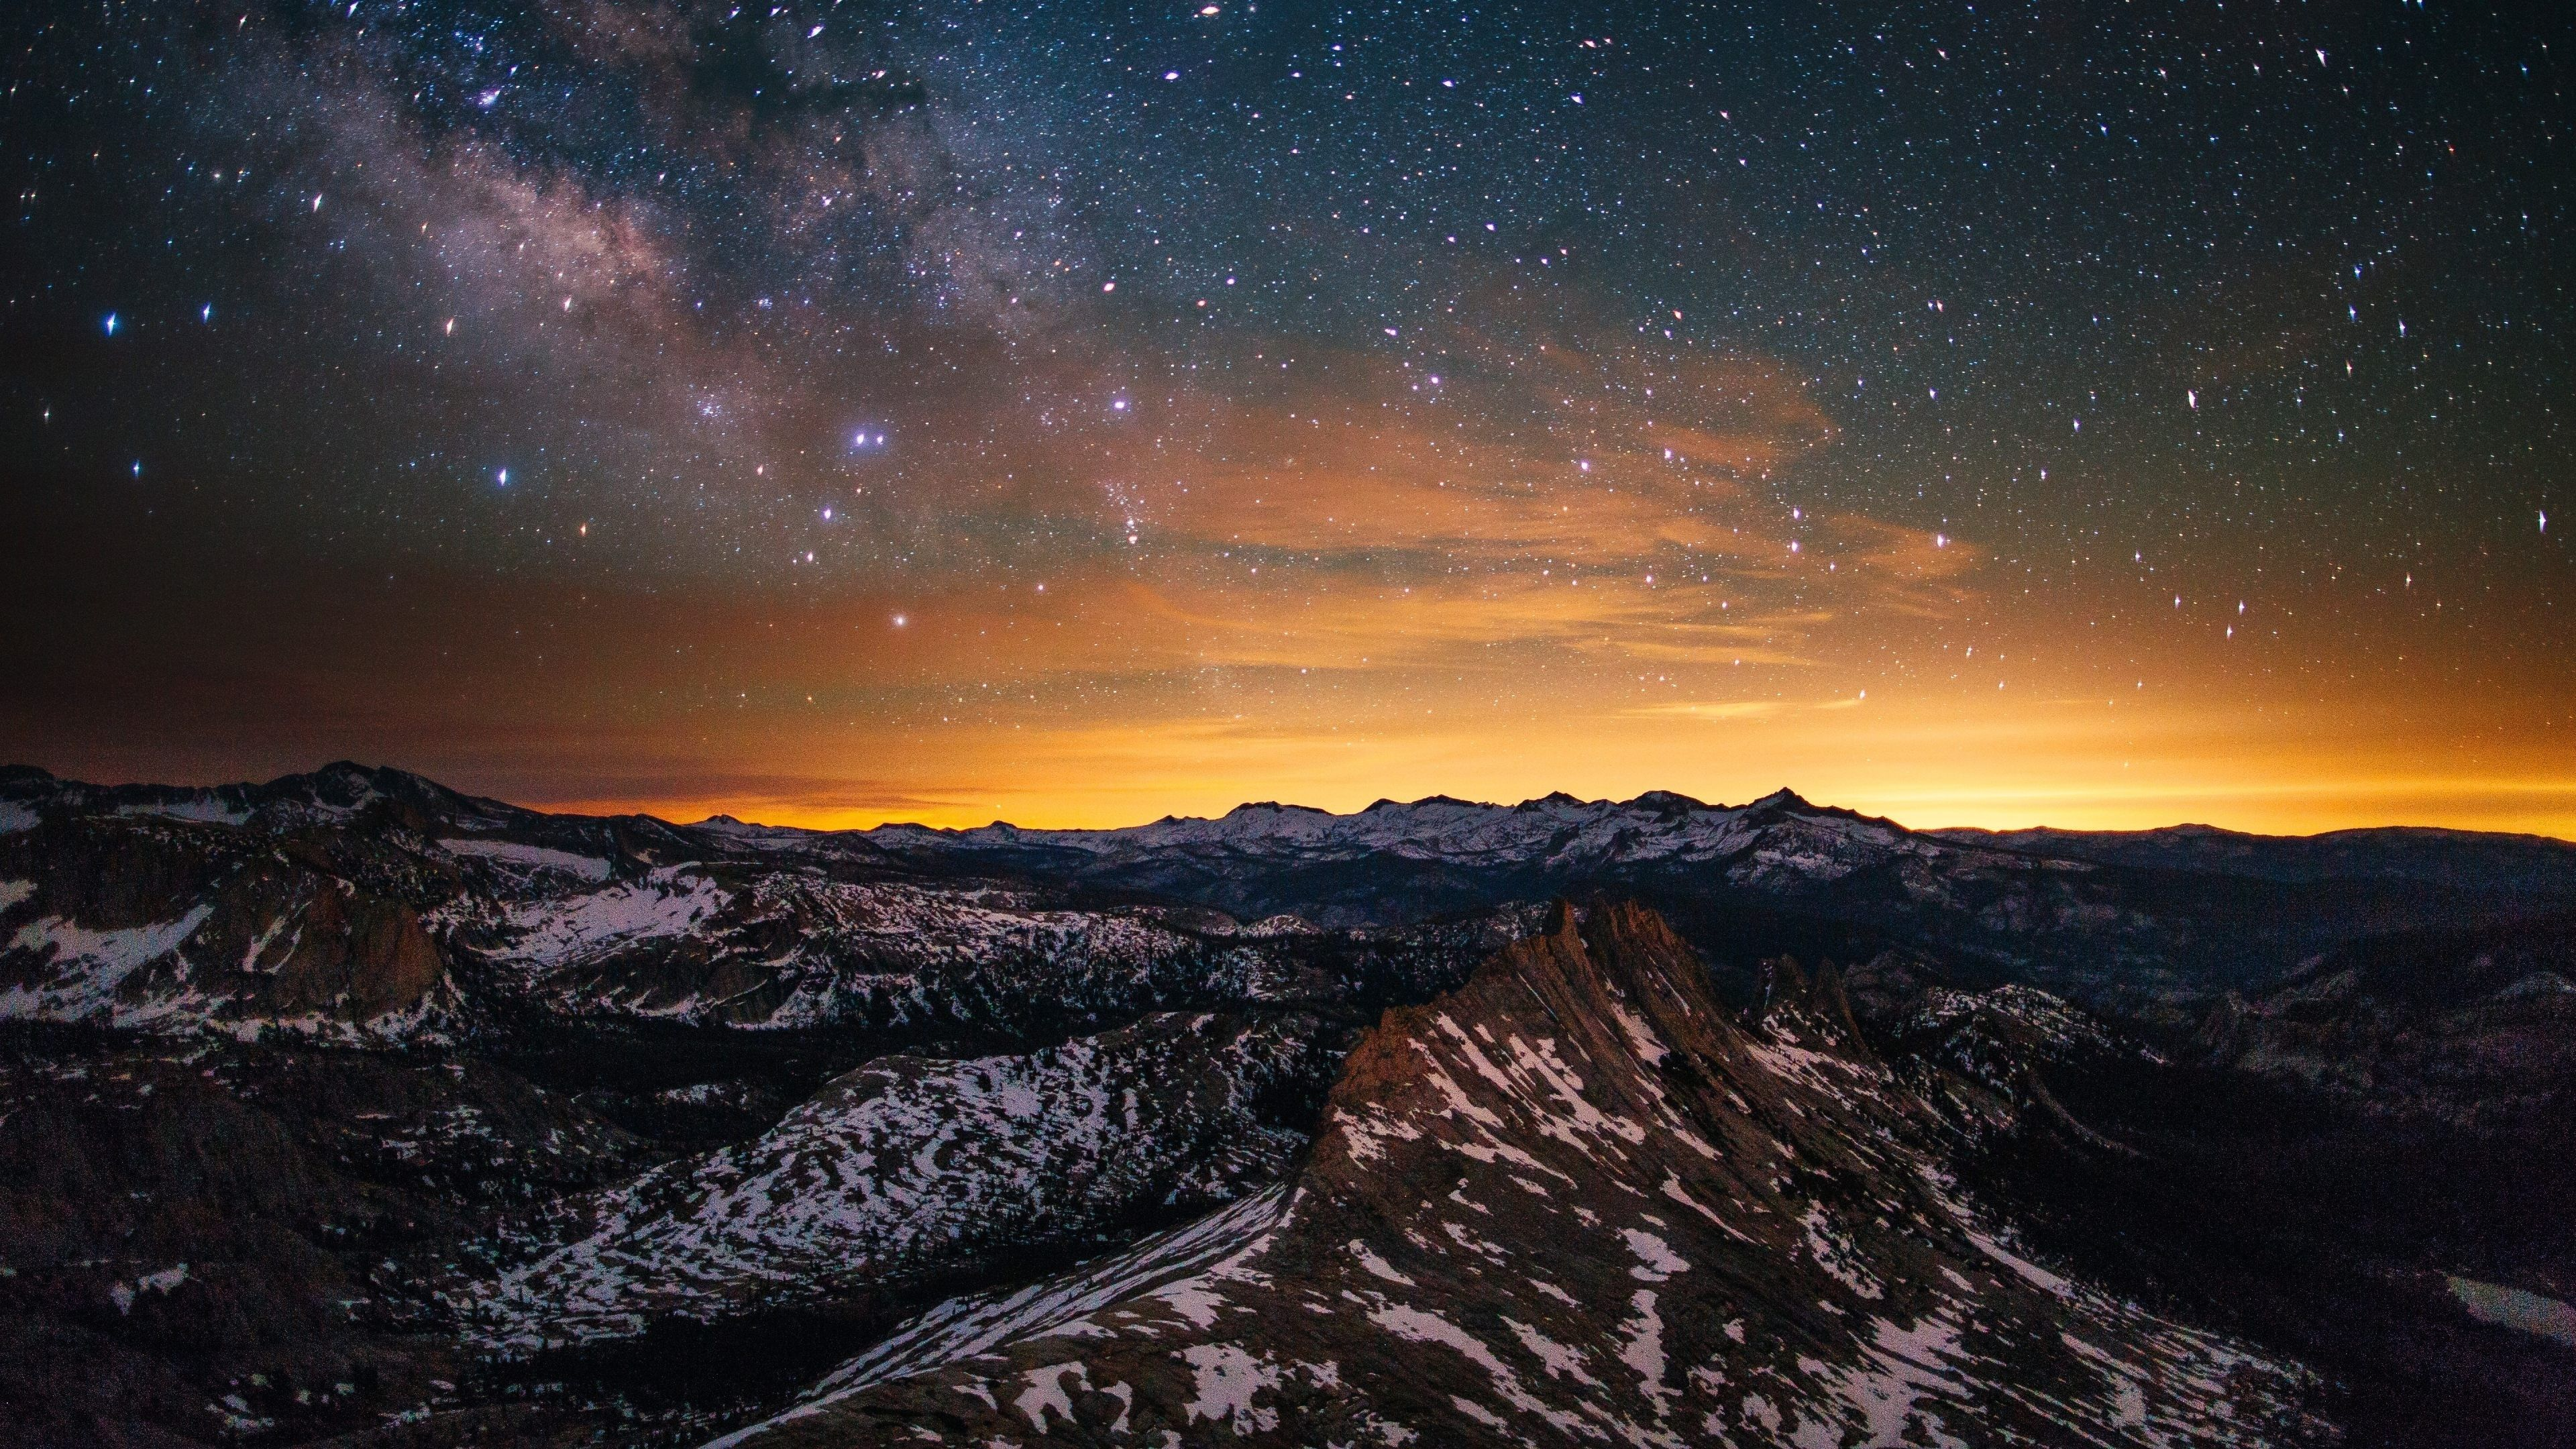 4k Wallpaper For Ipad: Yosemite Night Scenery 4k Ultra Hd Wallpaper